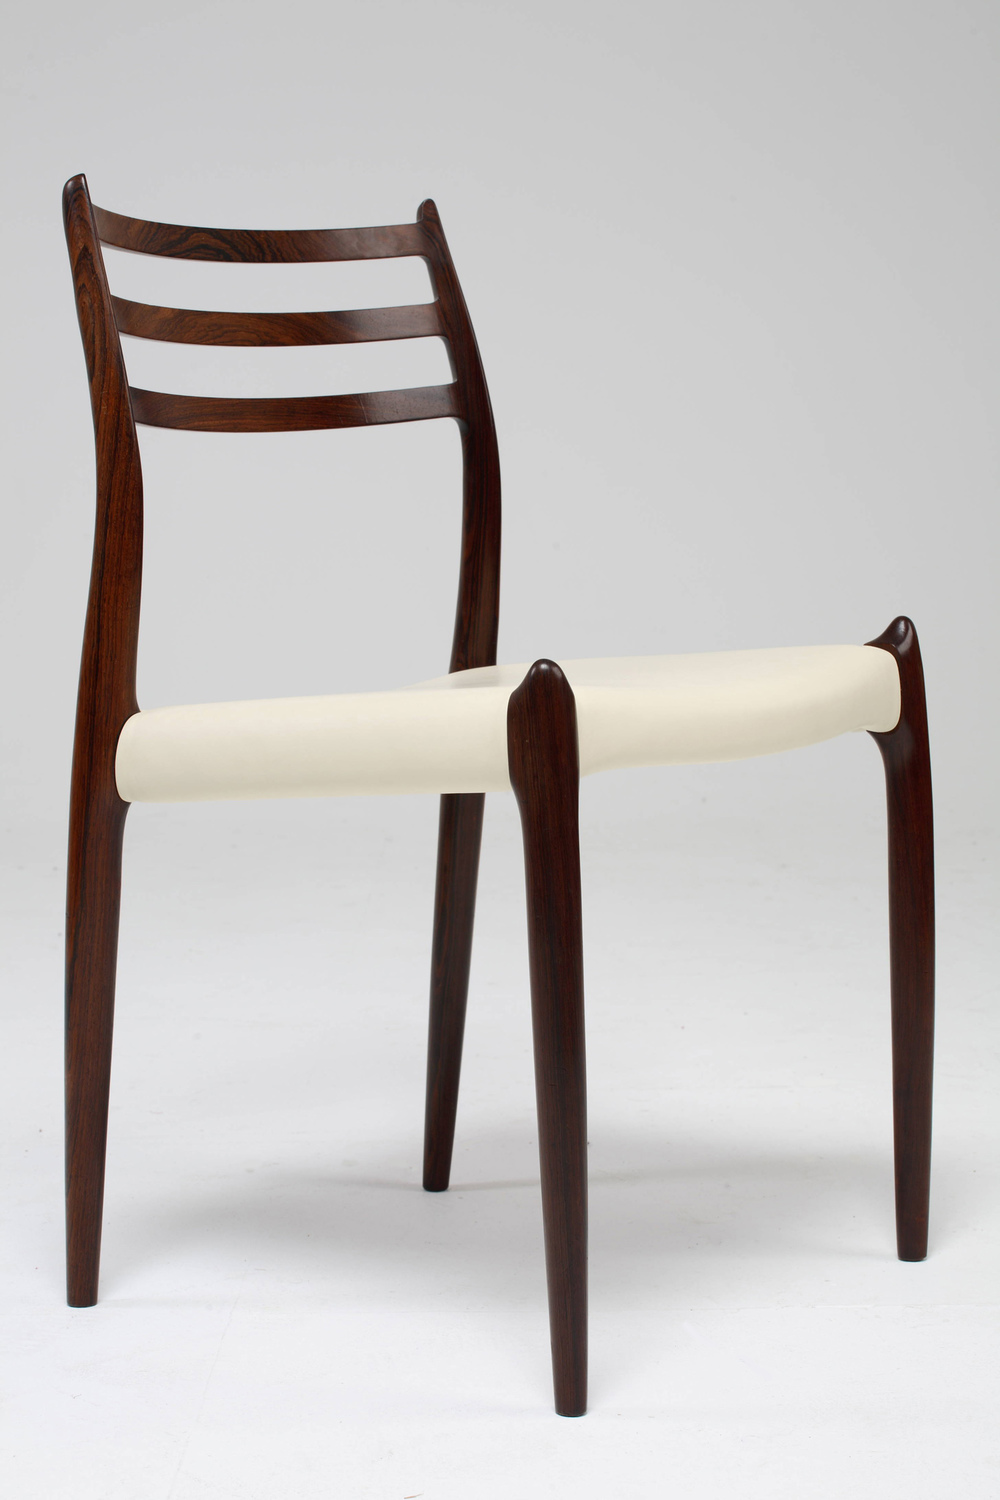 N O Moller 1962 Dining Chair • made 1962-69 •